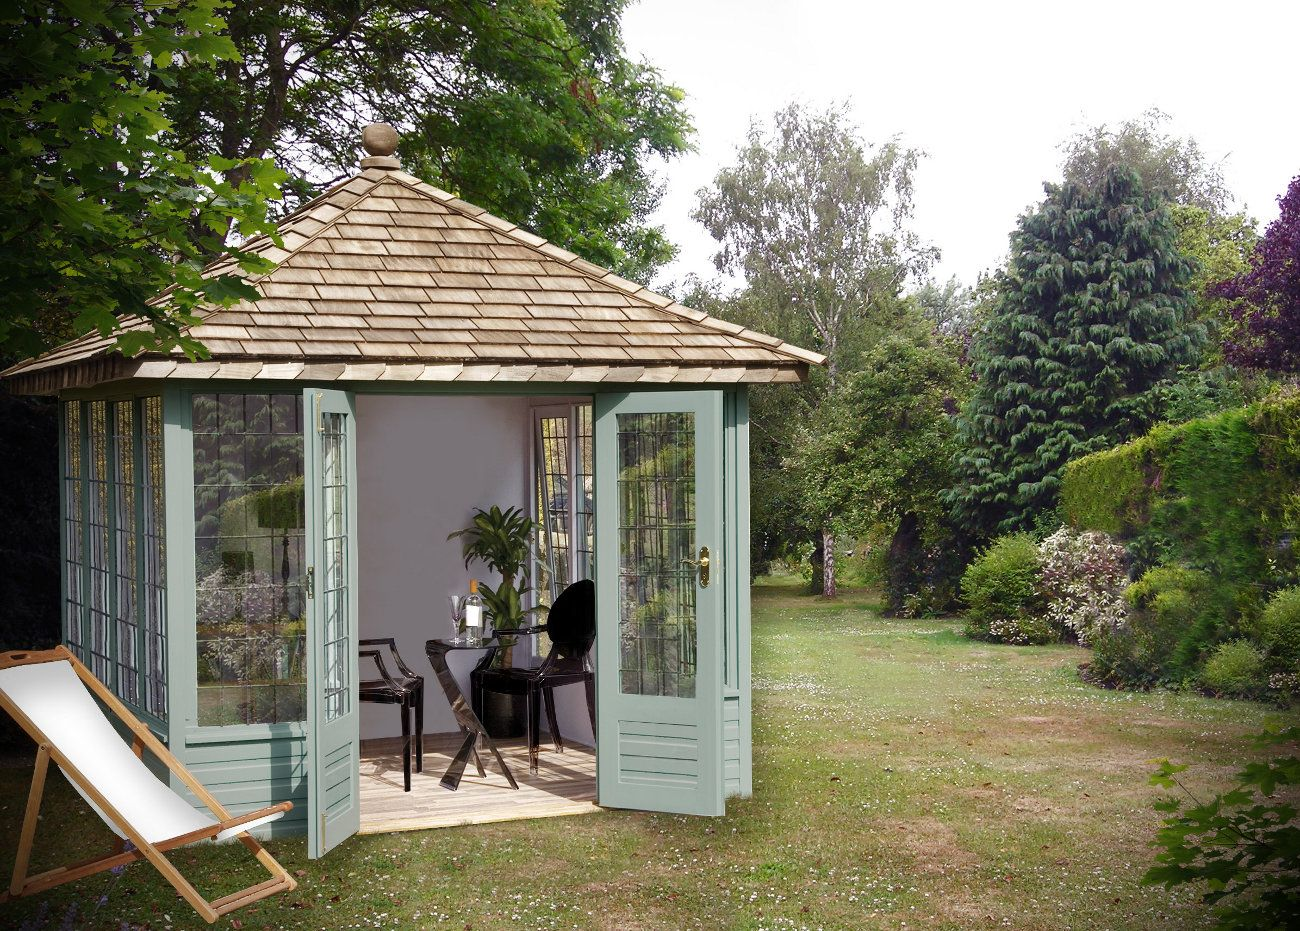 Garden Summerhouses Blog | Summer house design, Summer ...